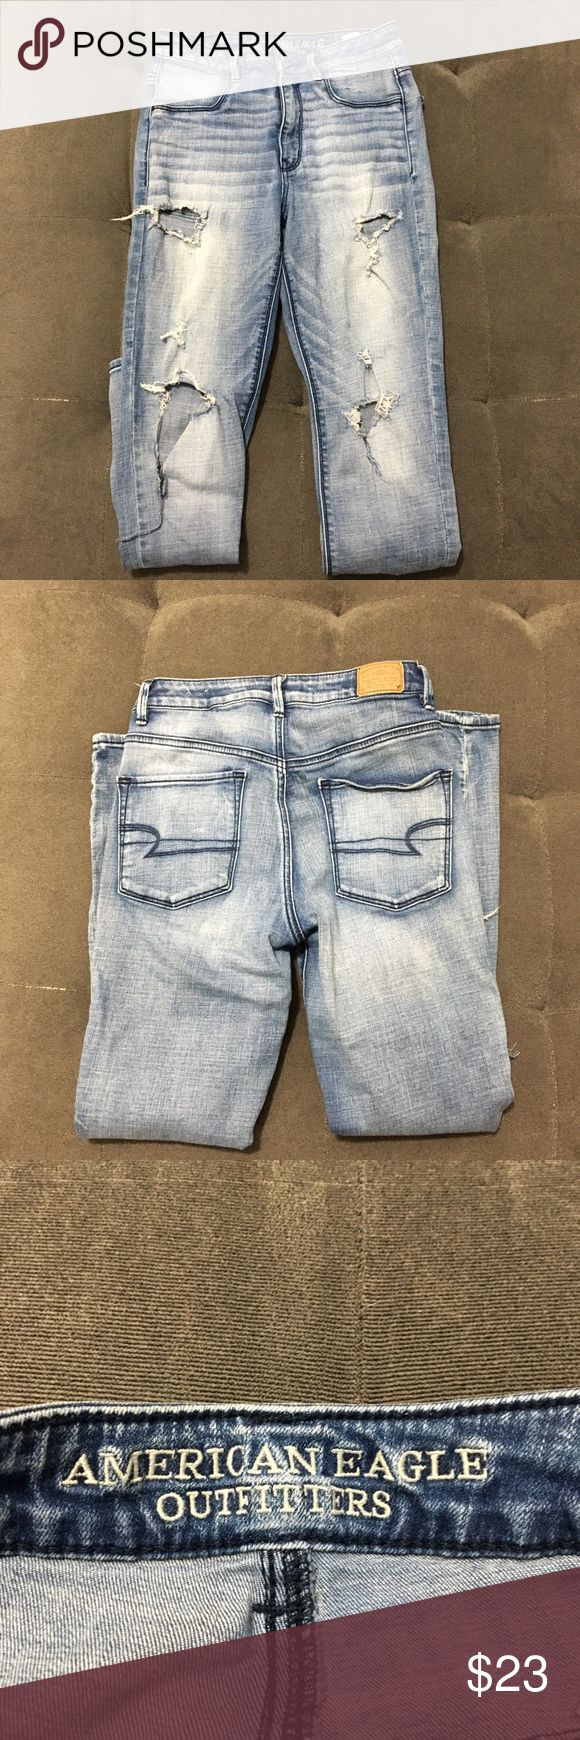 """American Eagle distressed sky high jeggings American Eagle distressed sky high jeggings  Size: 6  About 13"""" waist (laying flat) About 9 1/2"""" front rise About 27 1/2"""" inseam  Good pre loved condition. See pic of stain on back of leg   Bundle fav items for a personal discount. Offers are always welcome, too! No trades. Thank you! (43) American Eagle Outfitters Jeans Skinny"""